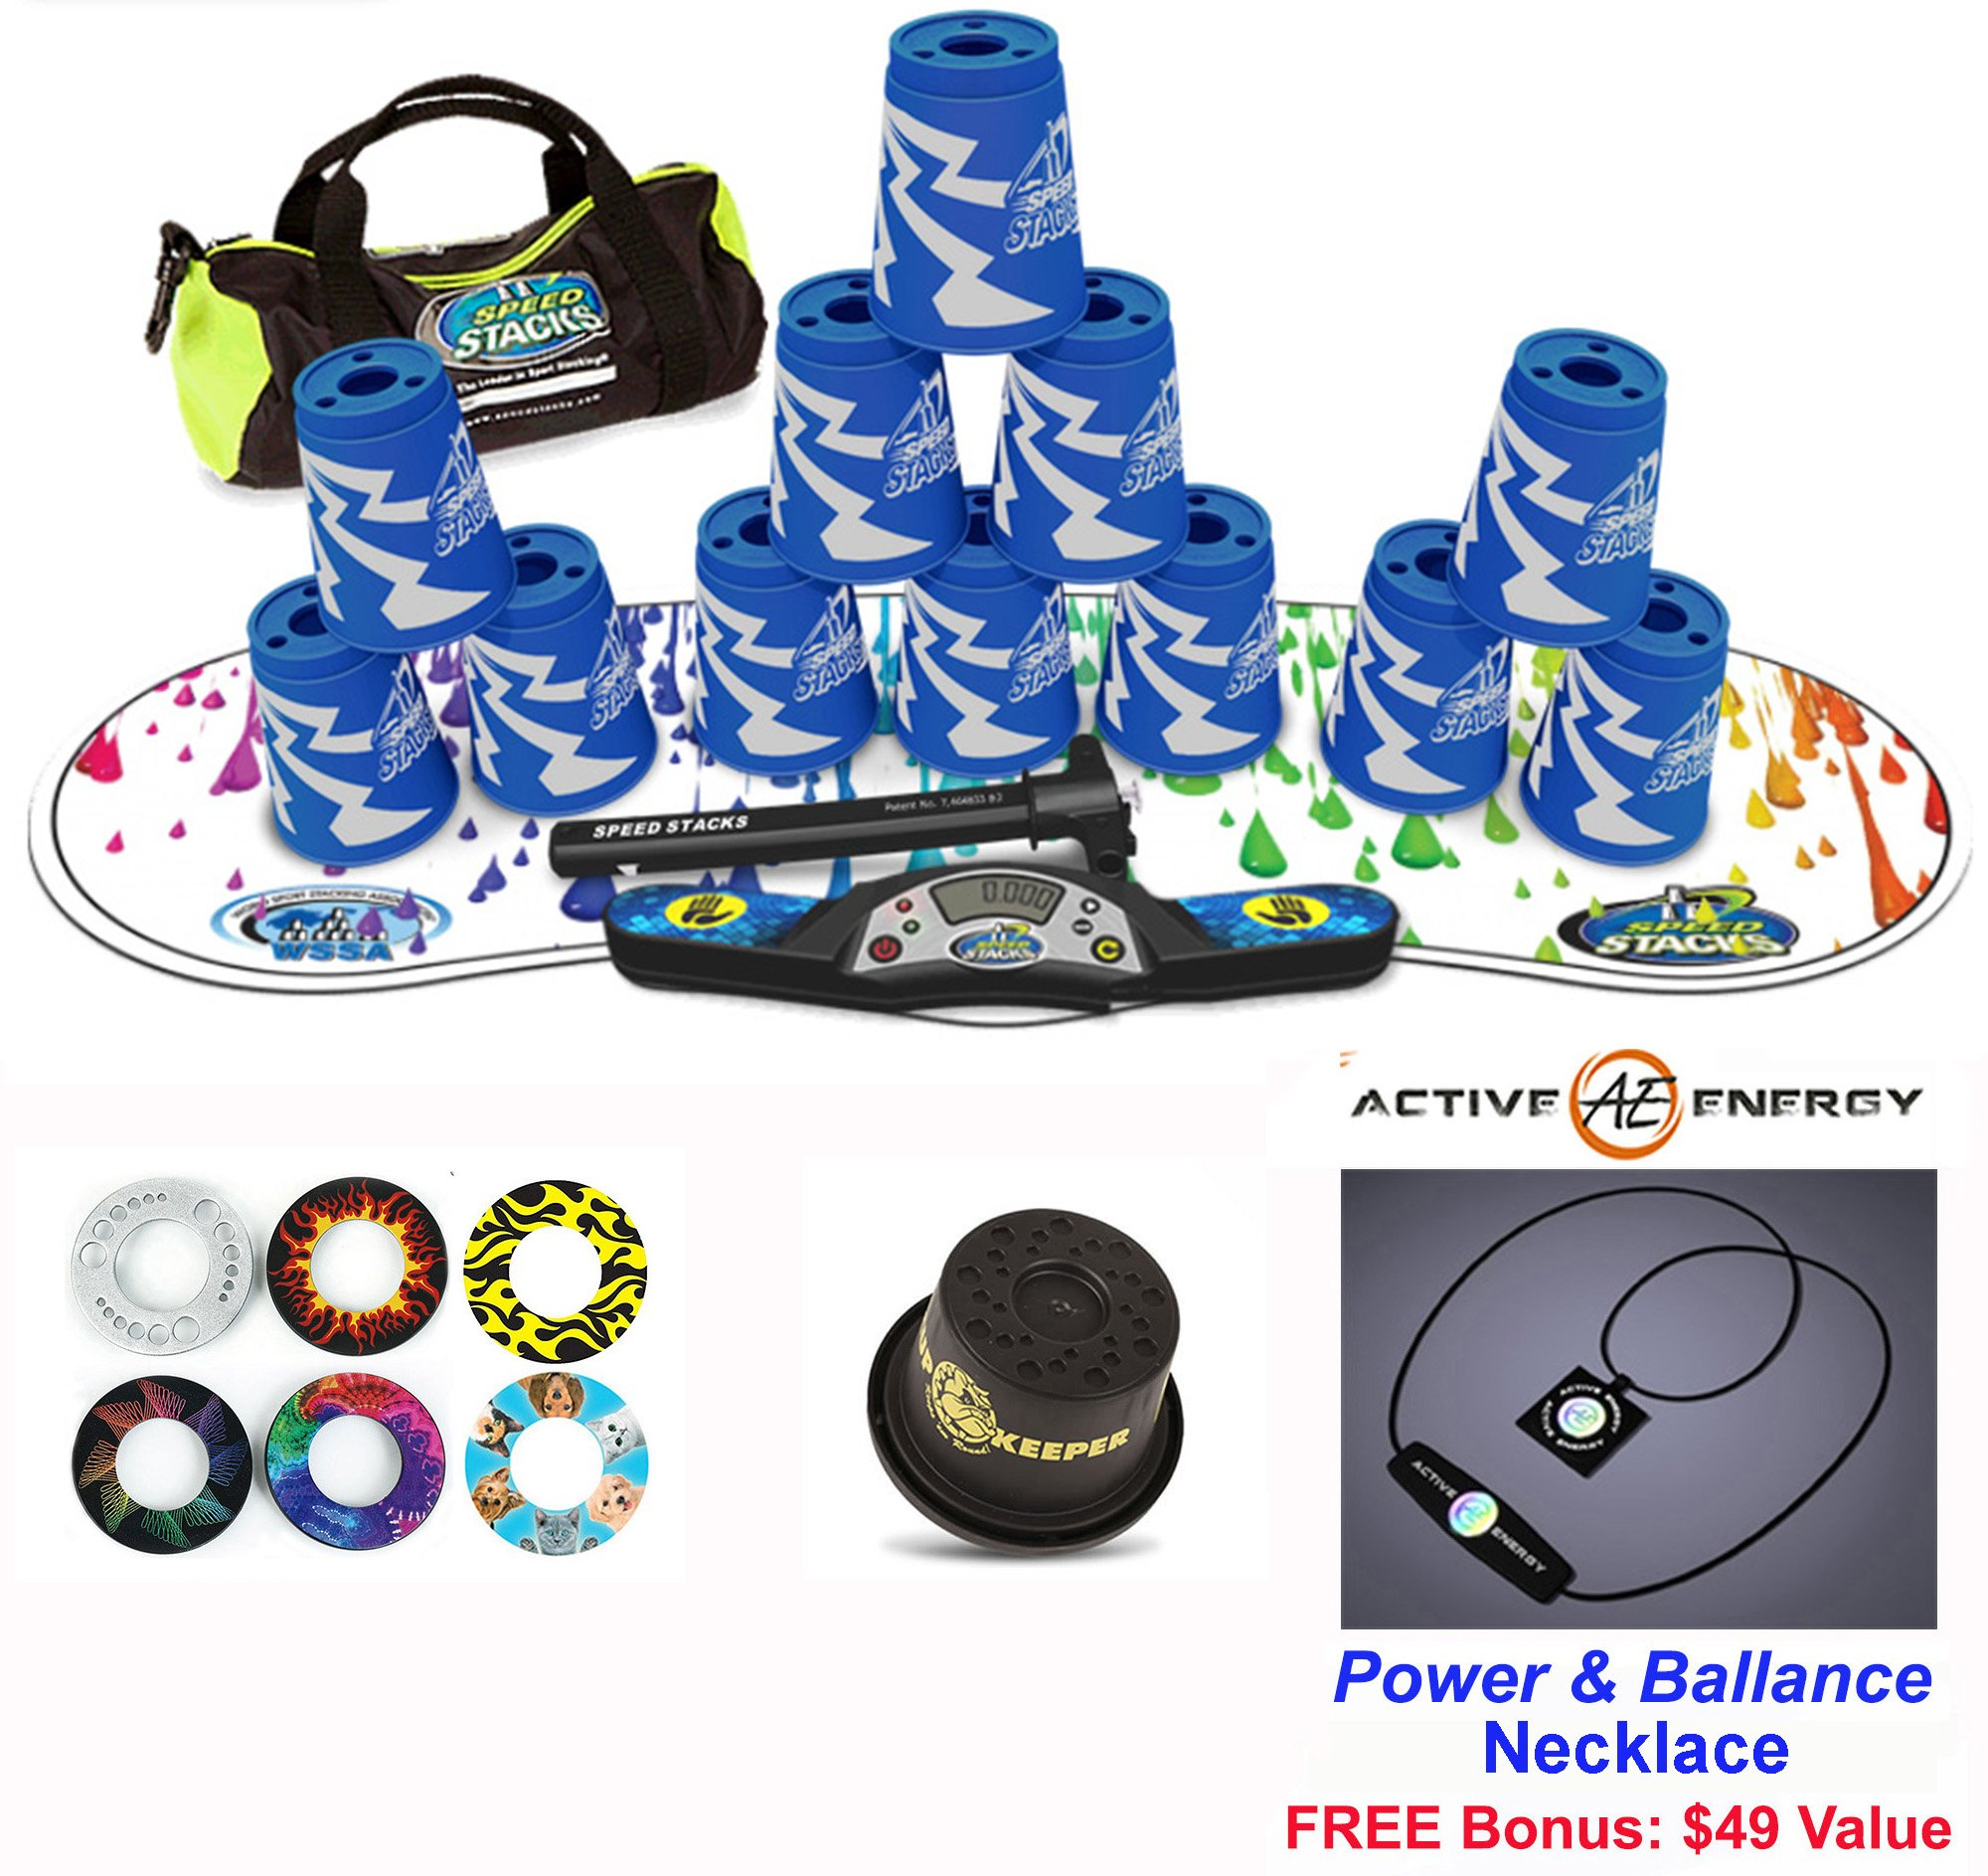 Speed Stacks Combo Set ''The Works'': 12 ATOMIC PUNCH 4'' Cups, RAINBOW DROP Gen 3 Mat, G4 Pro Timer, Cup Keeper, Stem, Gear Bag + Active Energy Necklace by Speed Stacks